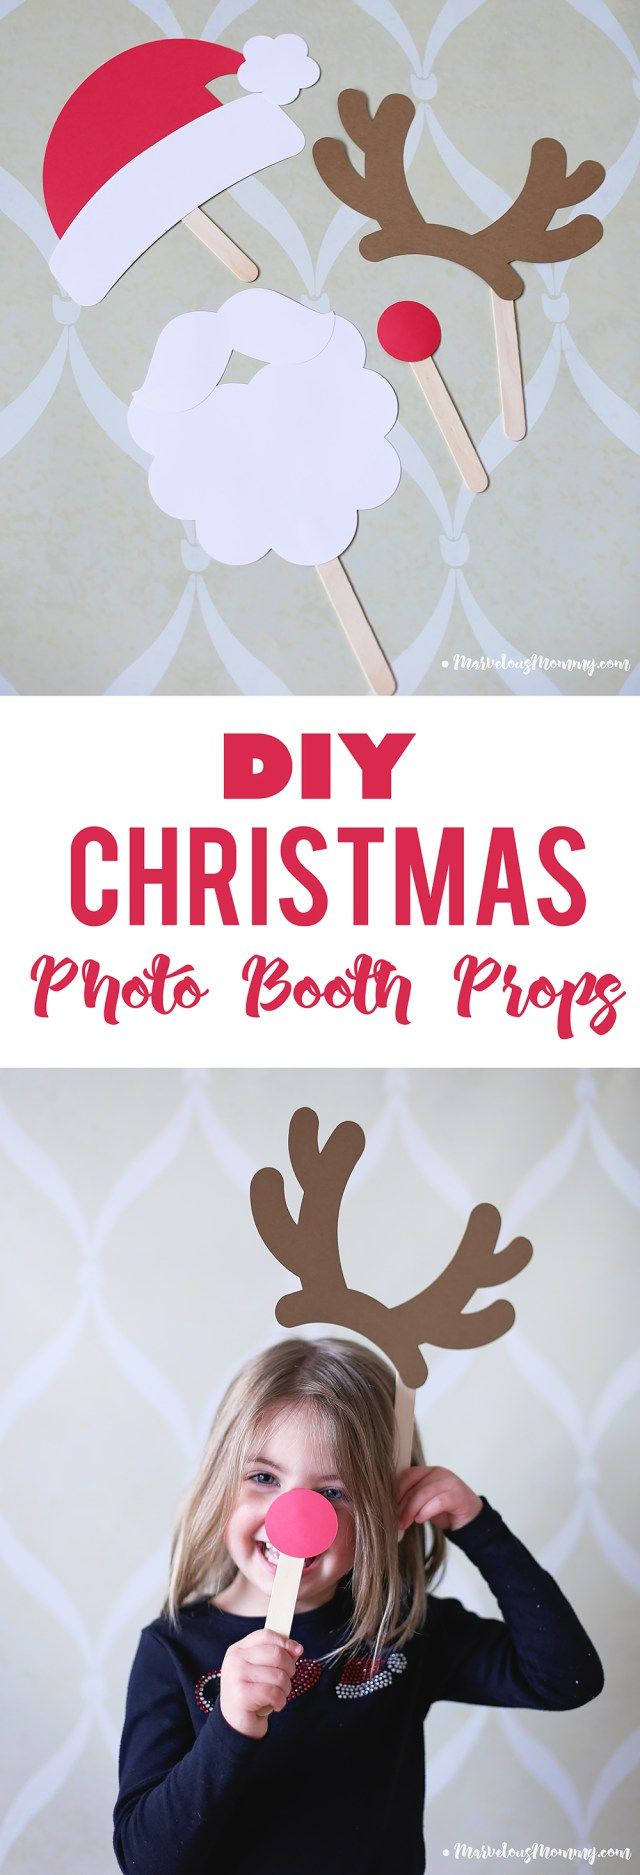 DIY Chrismtas Photo Booth Props + Silhouette CAMEO® Giveaway!